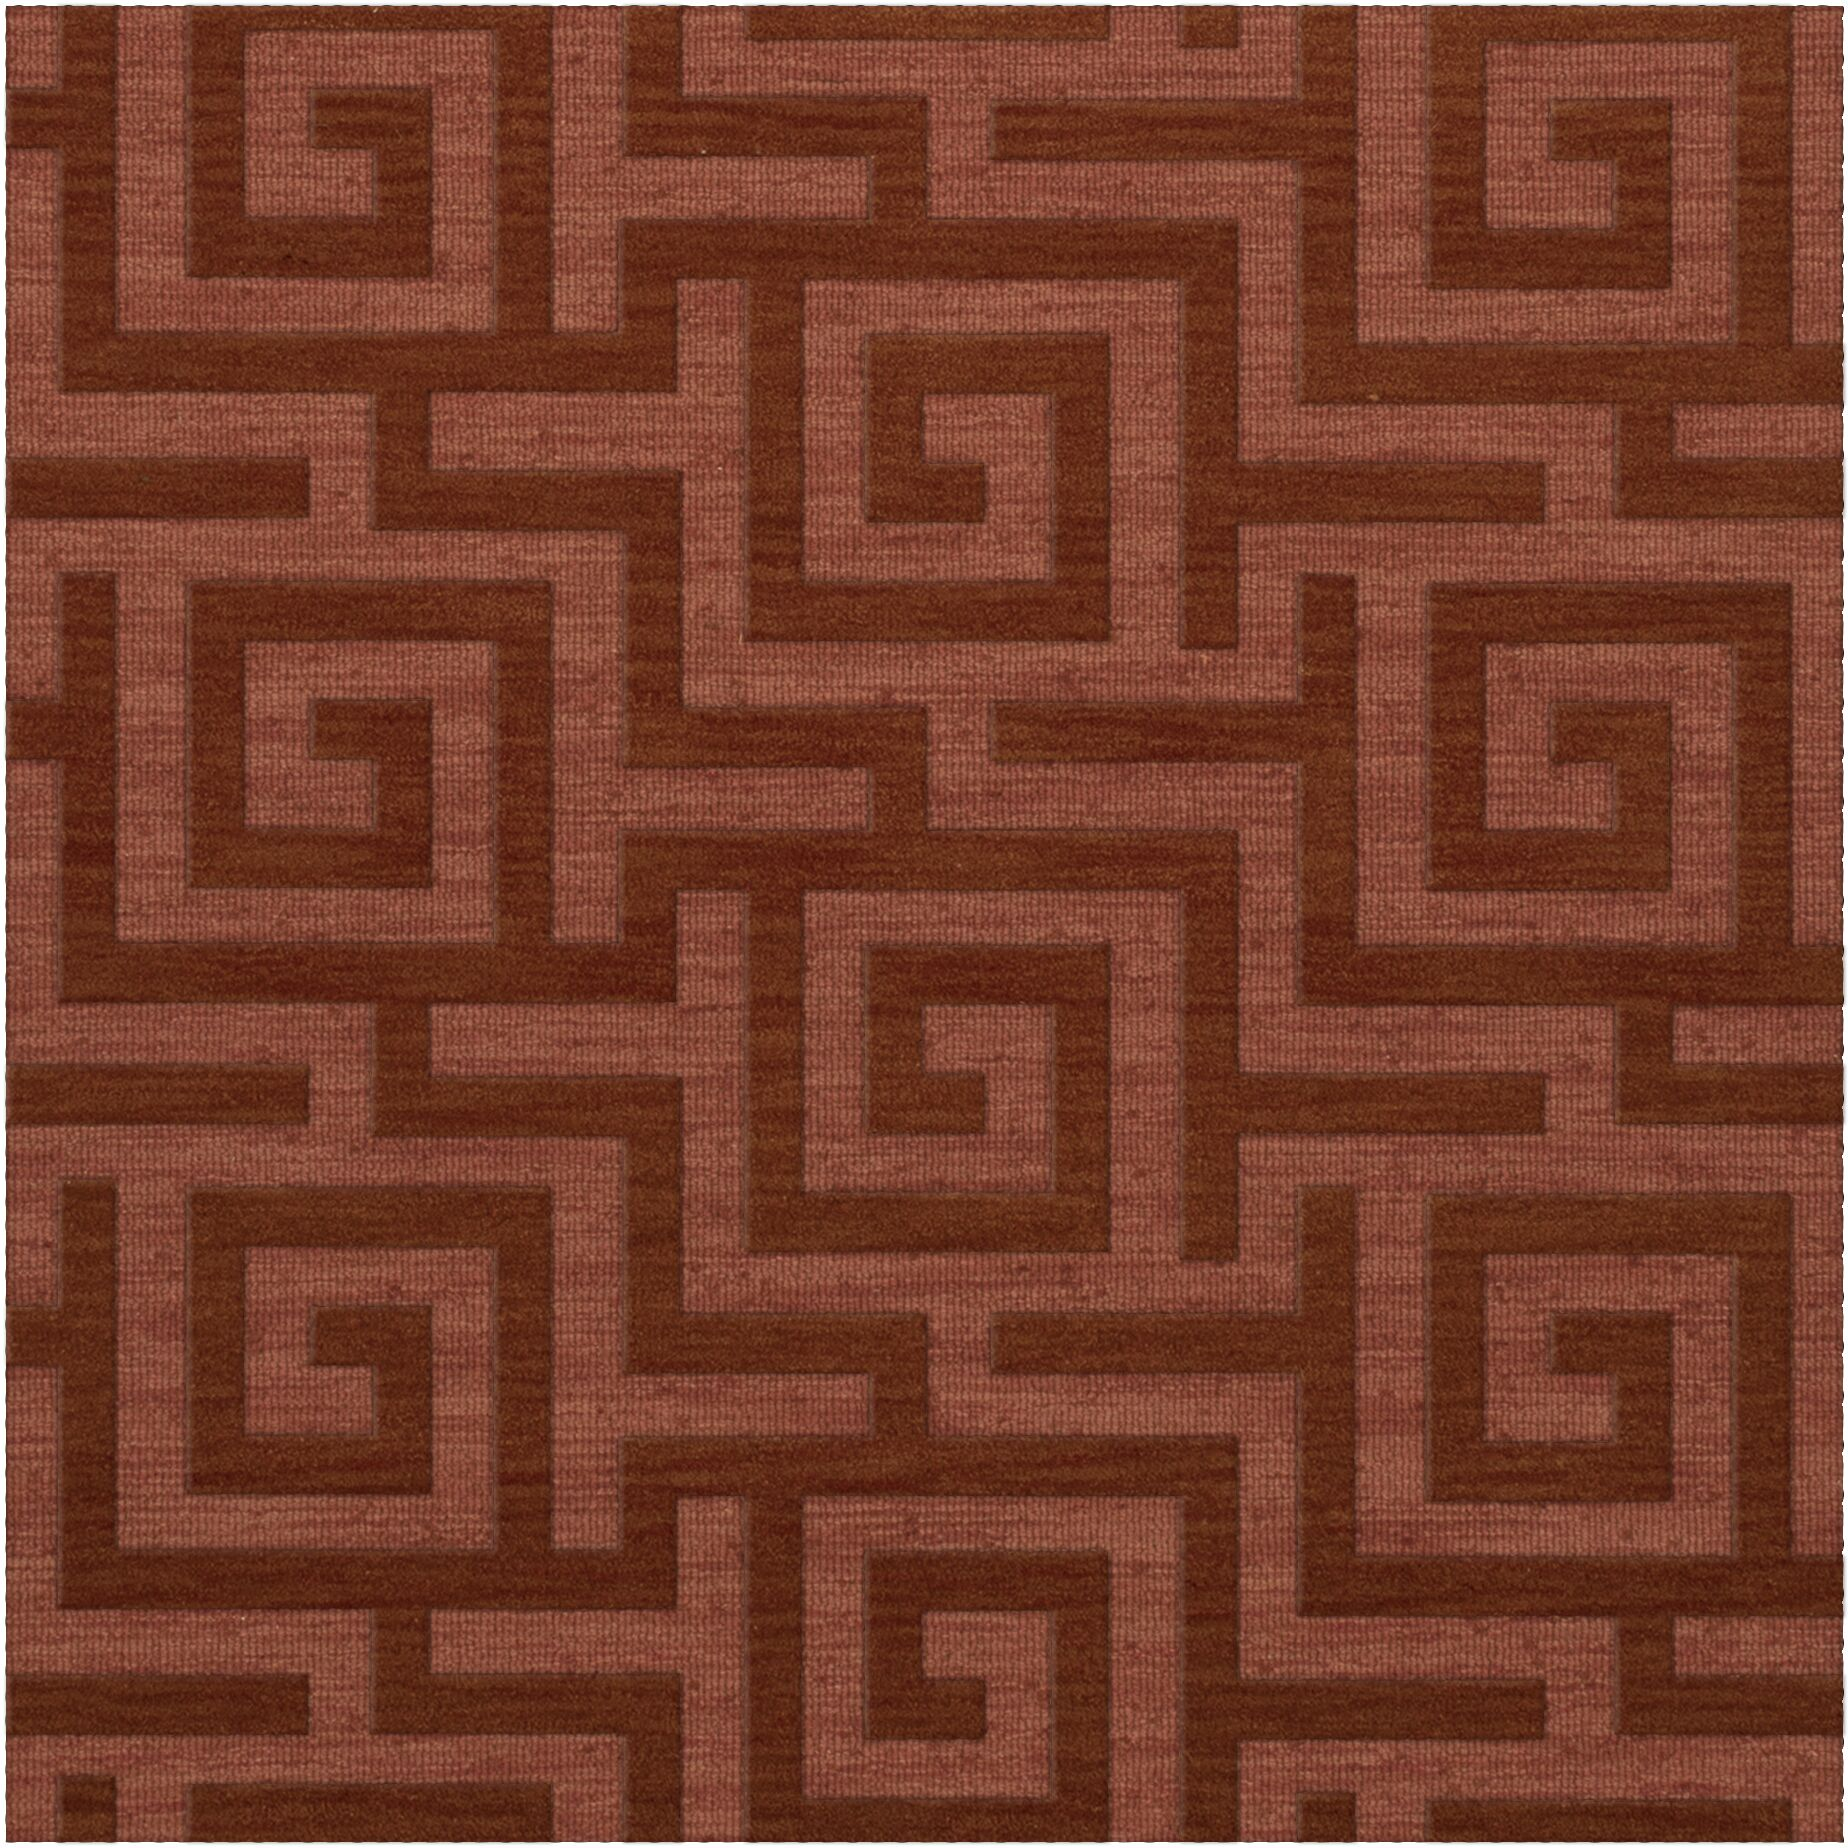 Dover Tufted Wool Coral Area Rug Rug Size: Square 4'